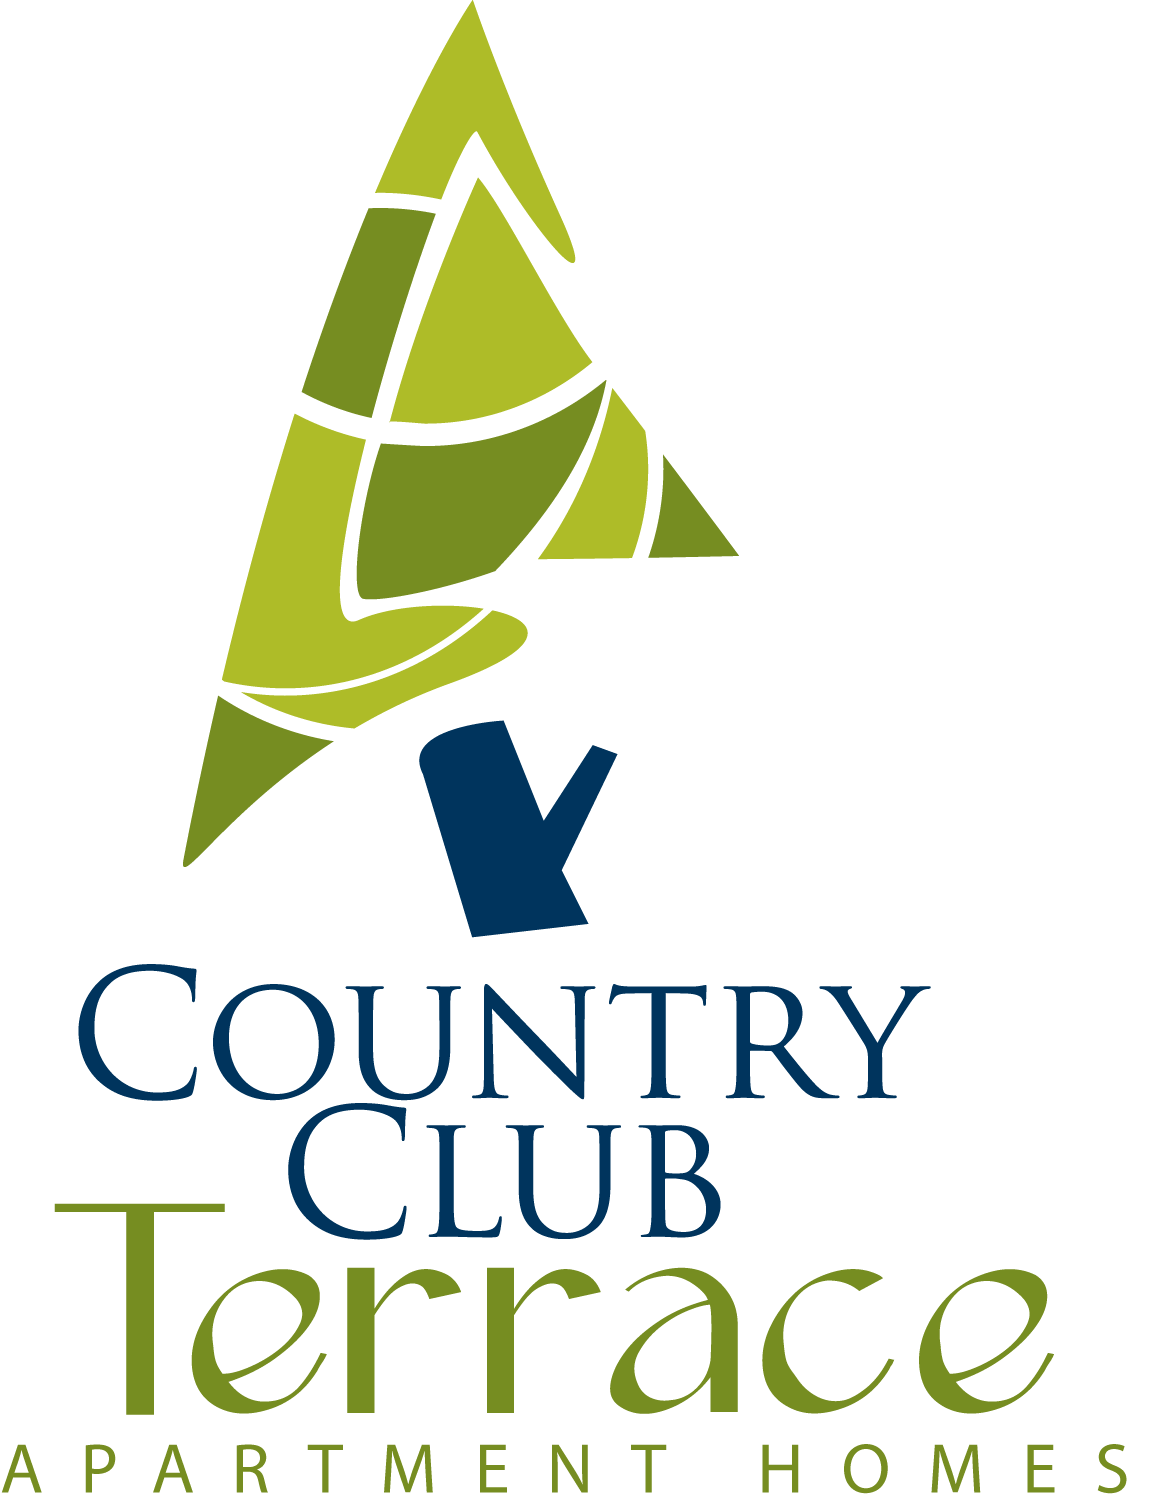 Country Club Terrace logo